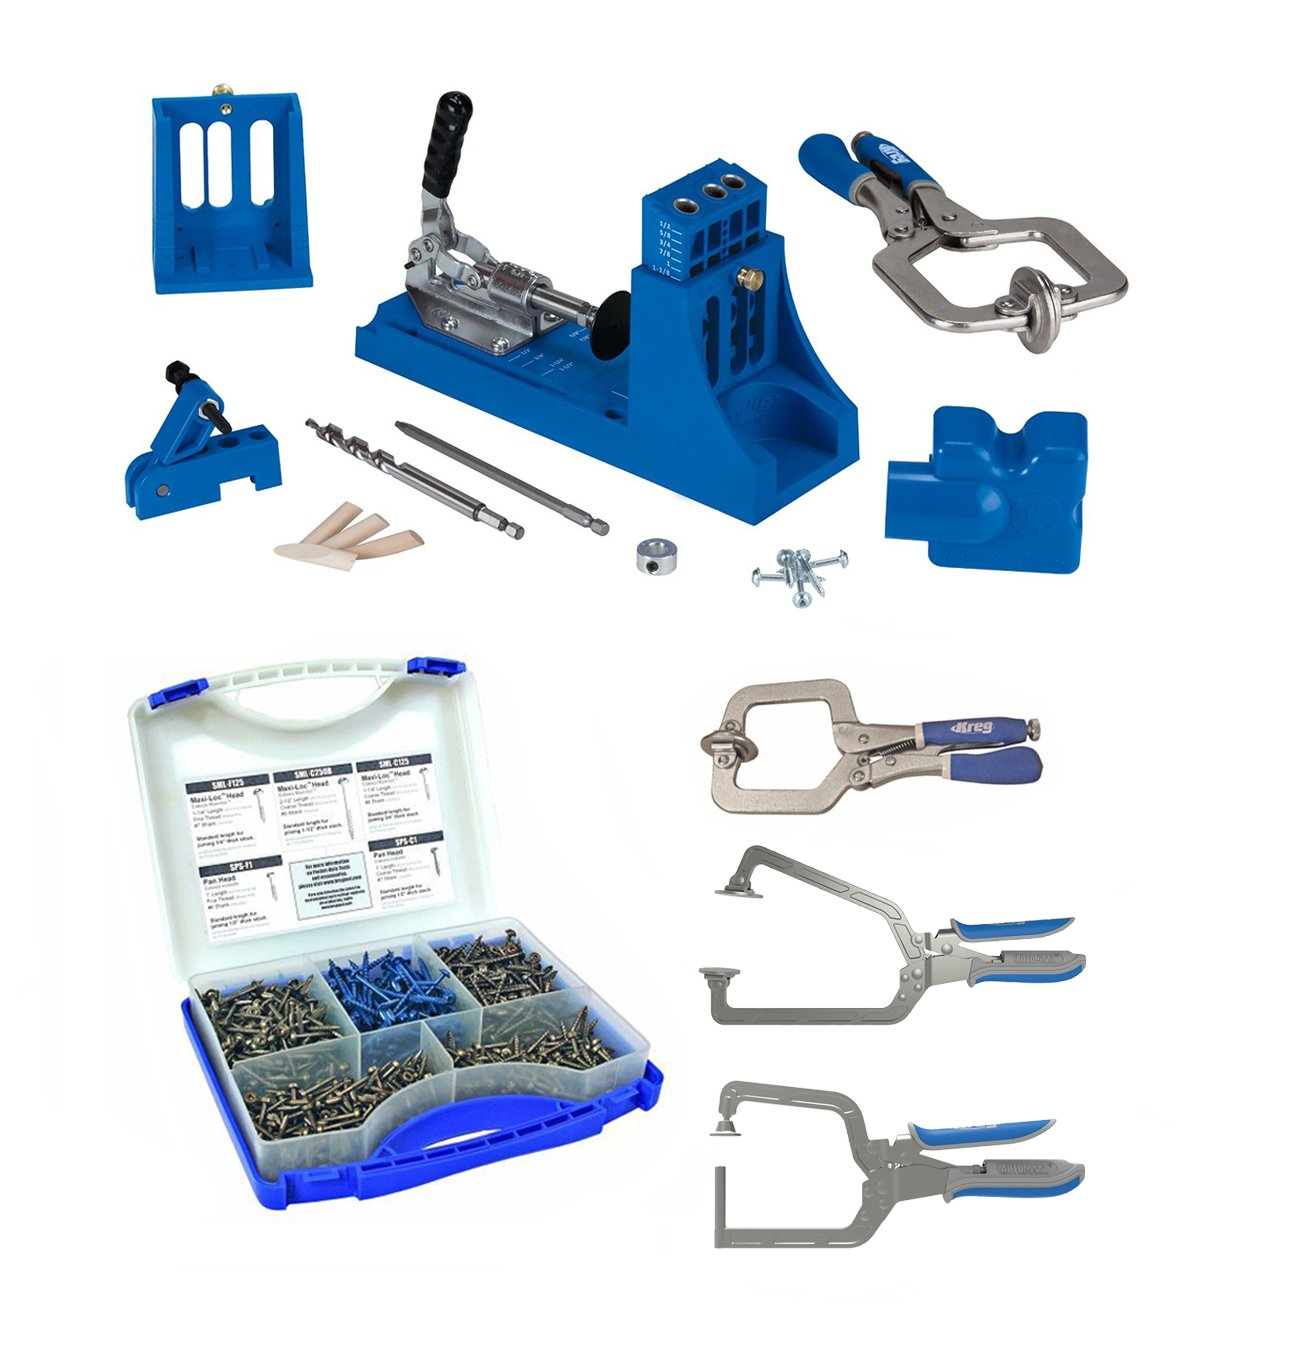 Kreg K4MS K4 Master System With Screw Kit & 3 Piece Clamp Set